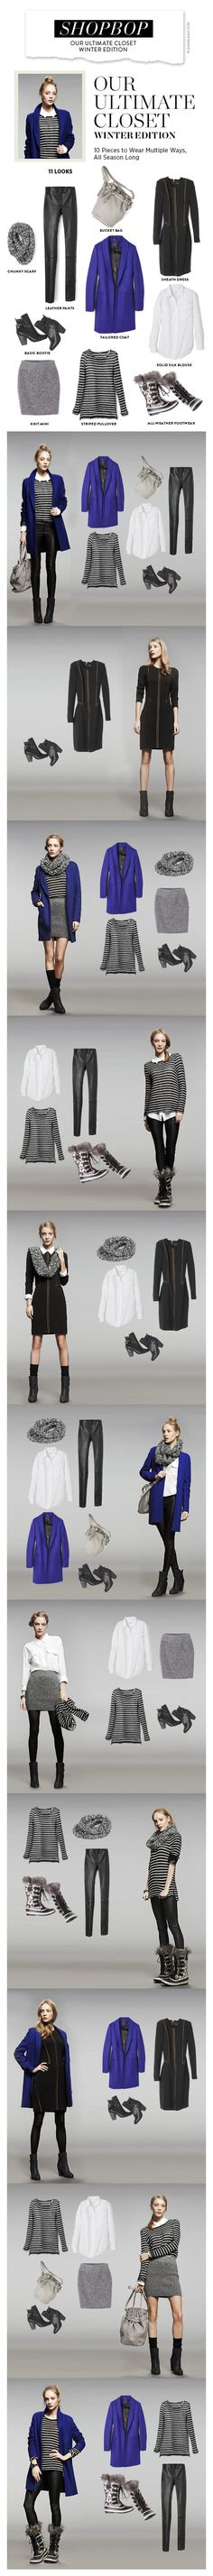 Shopbop «Our Ultimate Closet – Winter Edition»